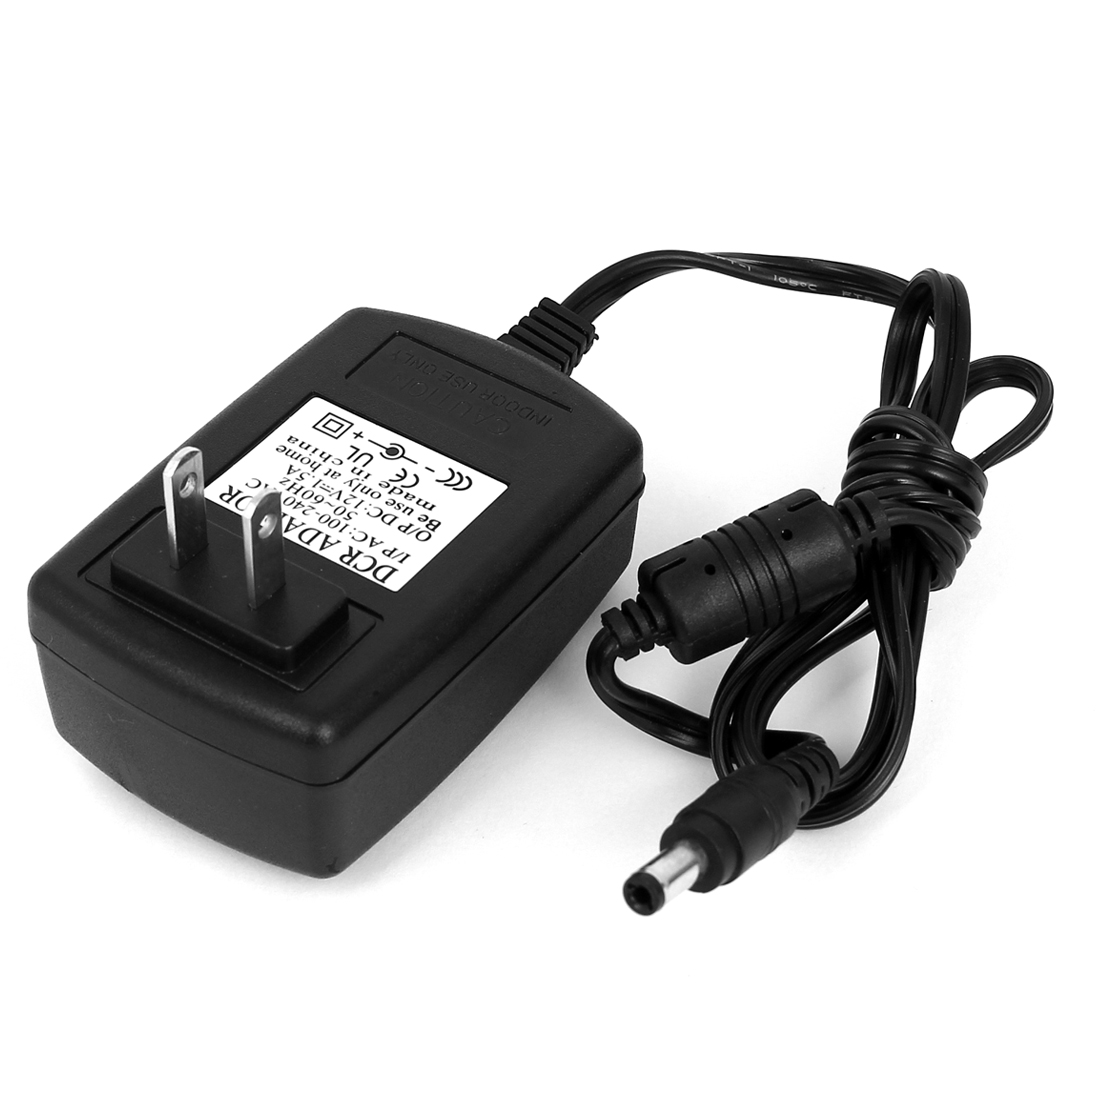 US Plug AC 100-240V to DC 12V 1.5A 5.5x2.5mm Power Adapter Converter Wall Charger